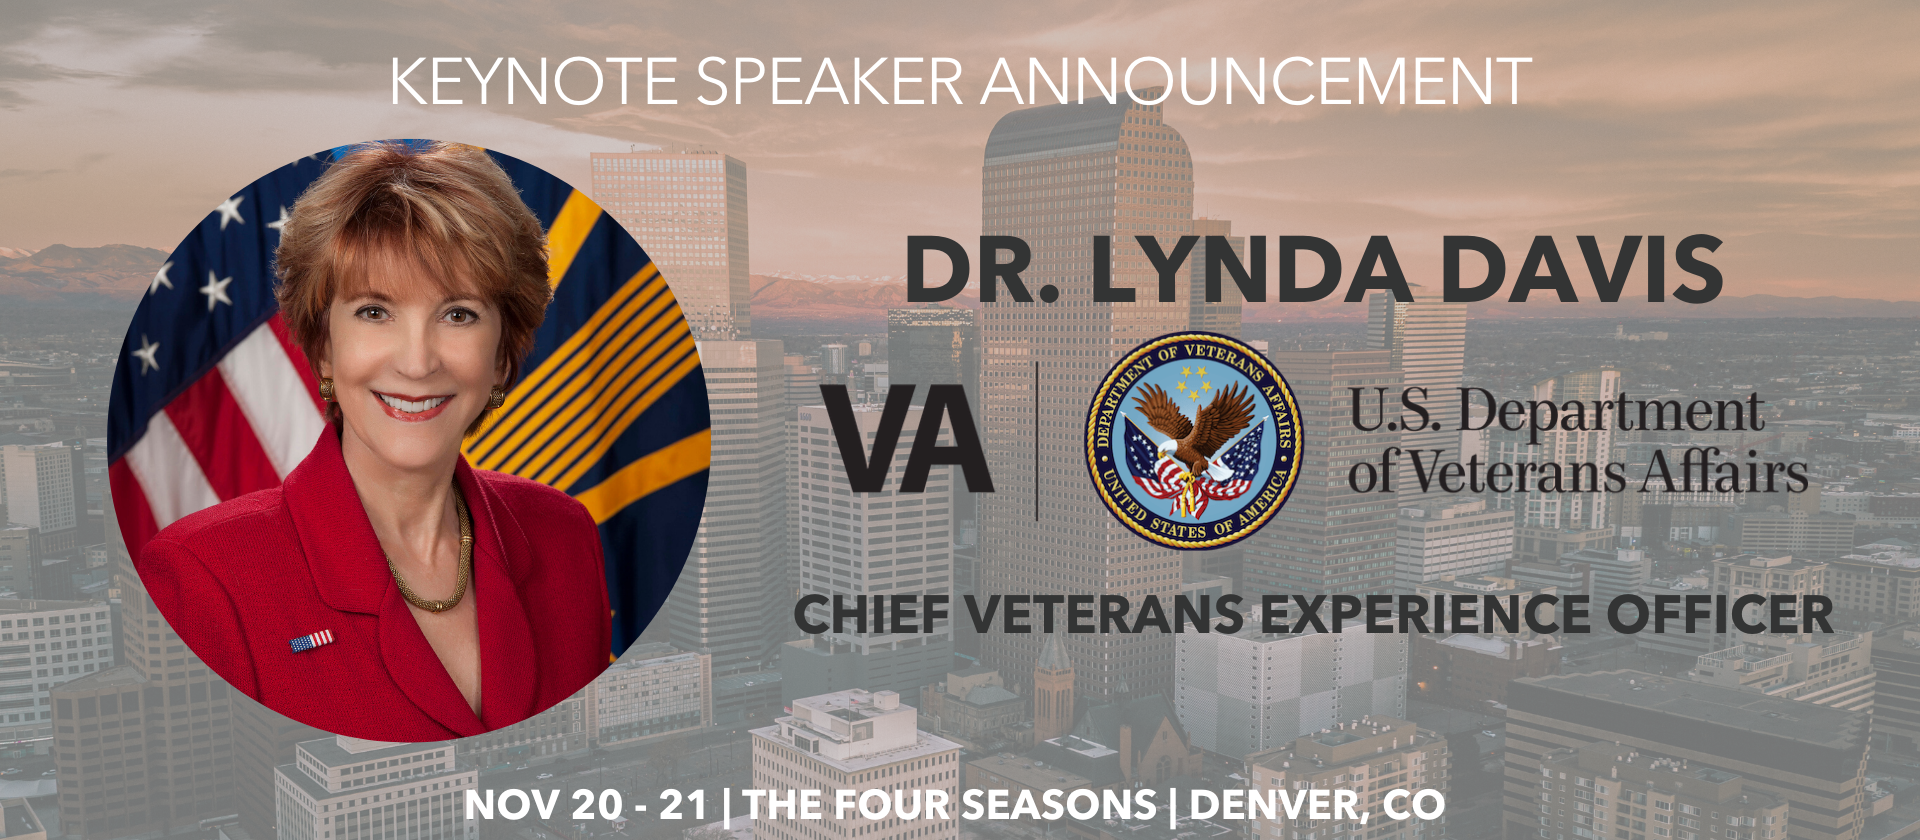 Dr Lynda Davis Us Department of Veteran Affairs Keynote Speaker Announcement